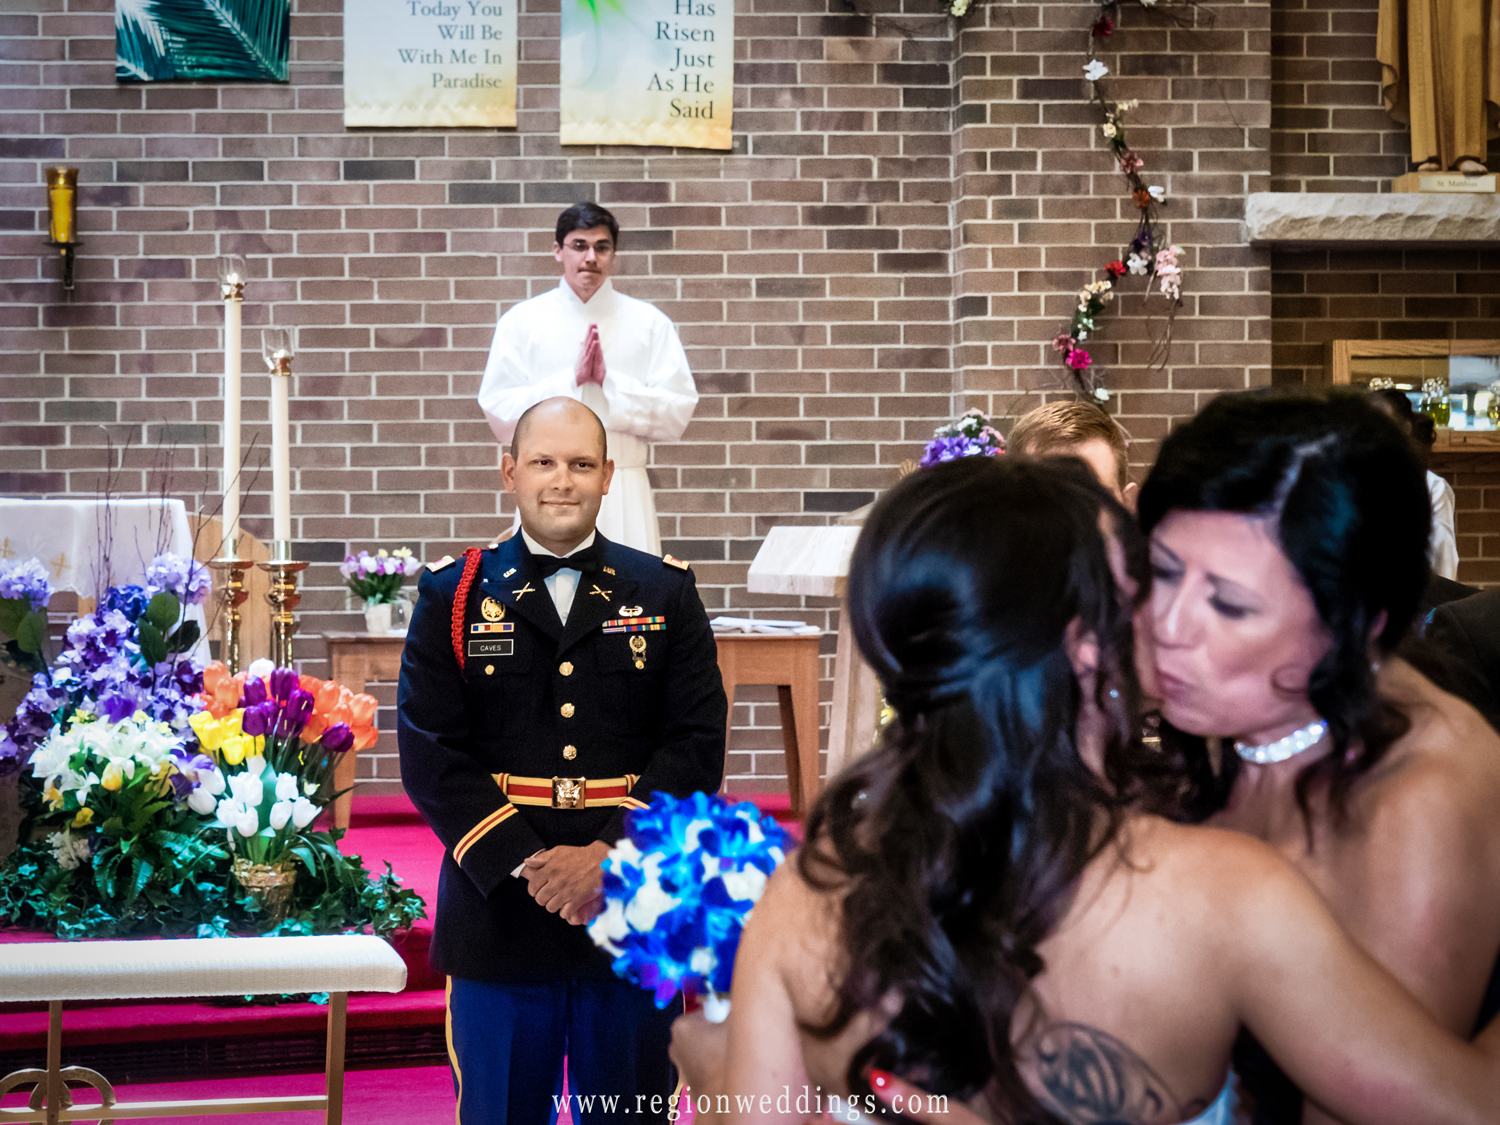 The groom smiles broadly as his bride's mother gives her away during their military wedding at Saint Matthias.